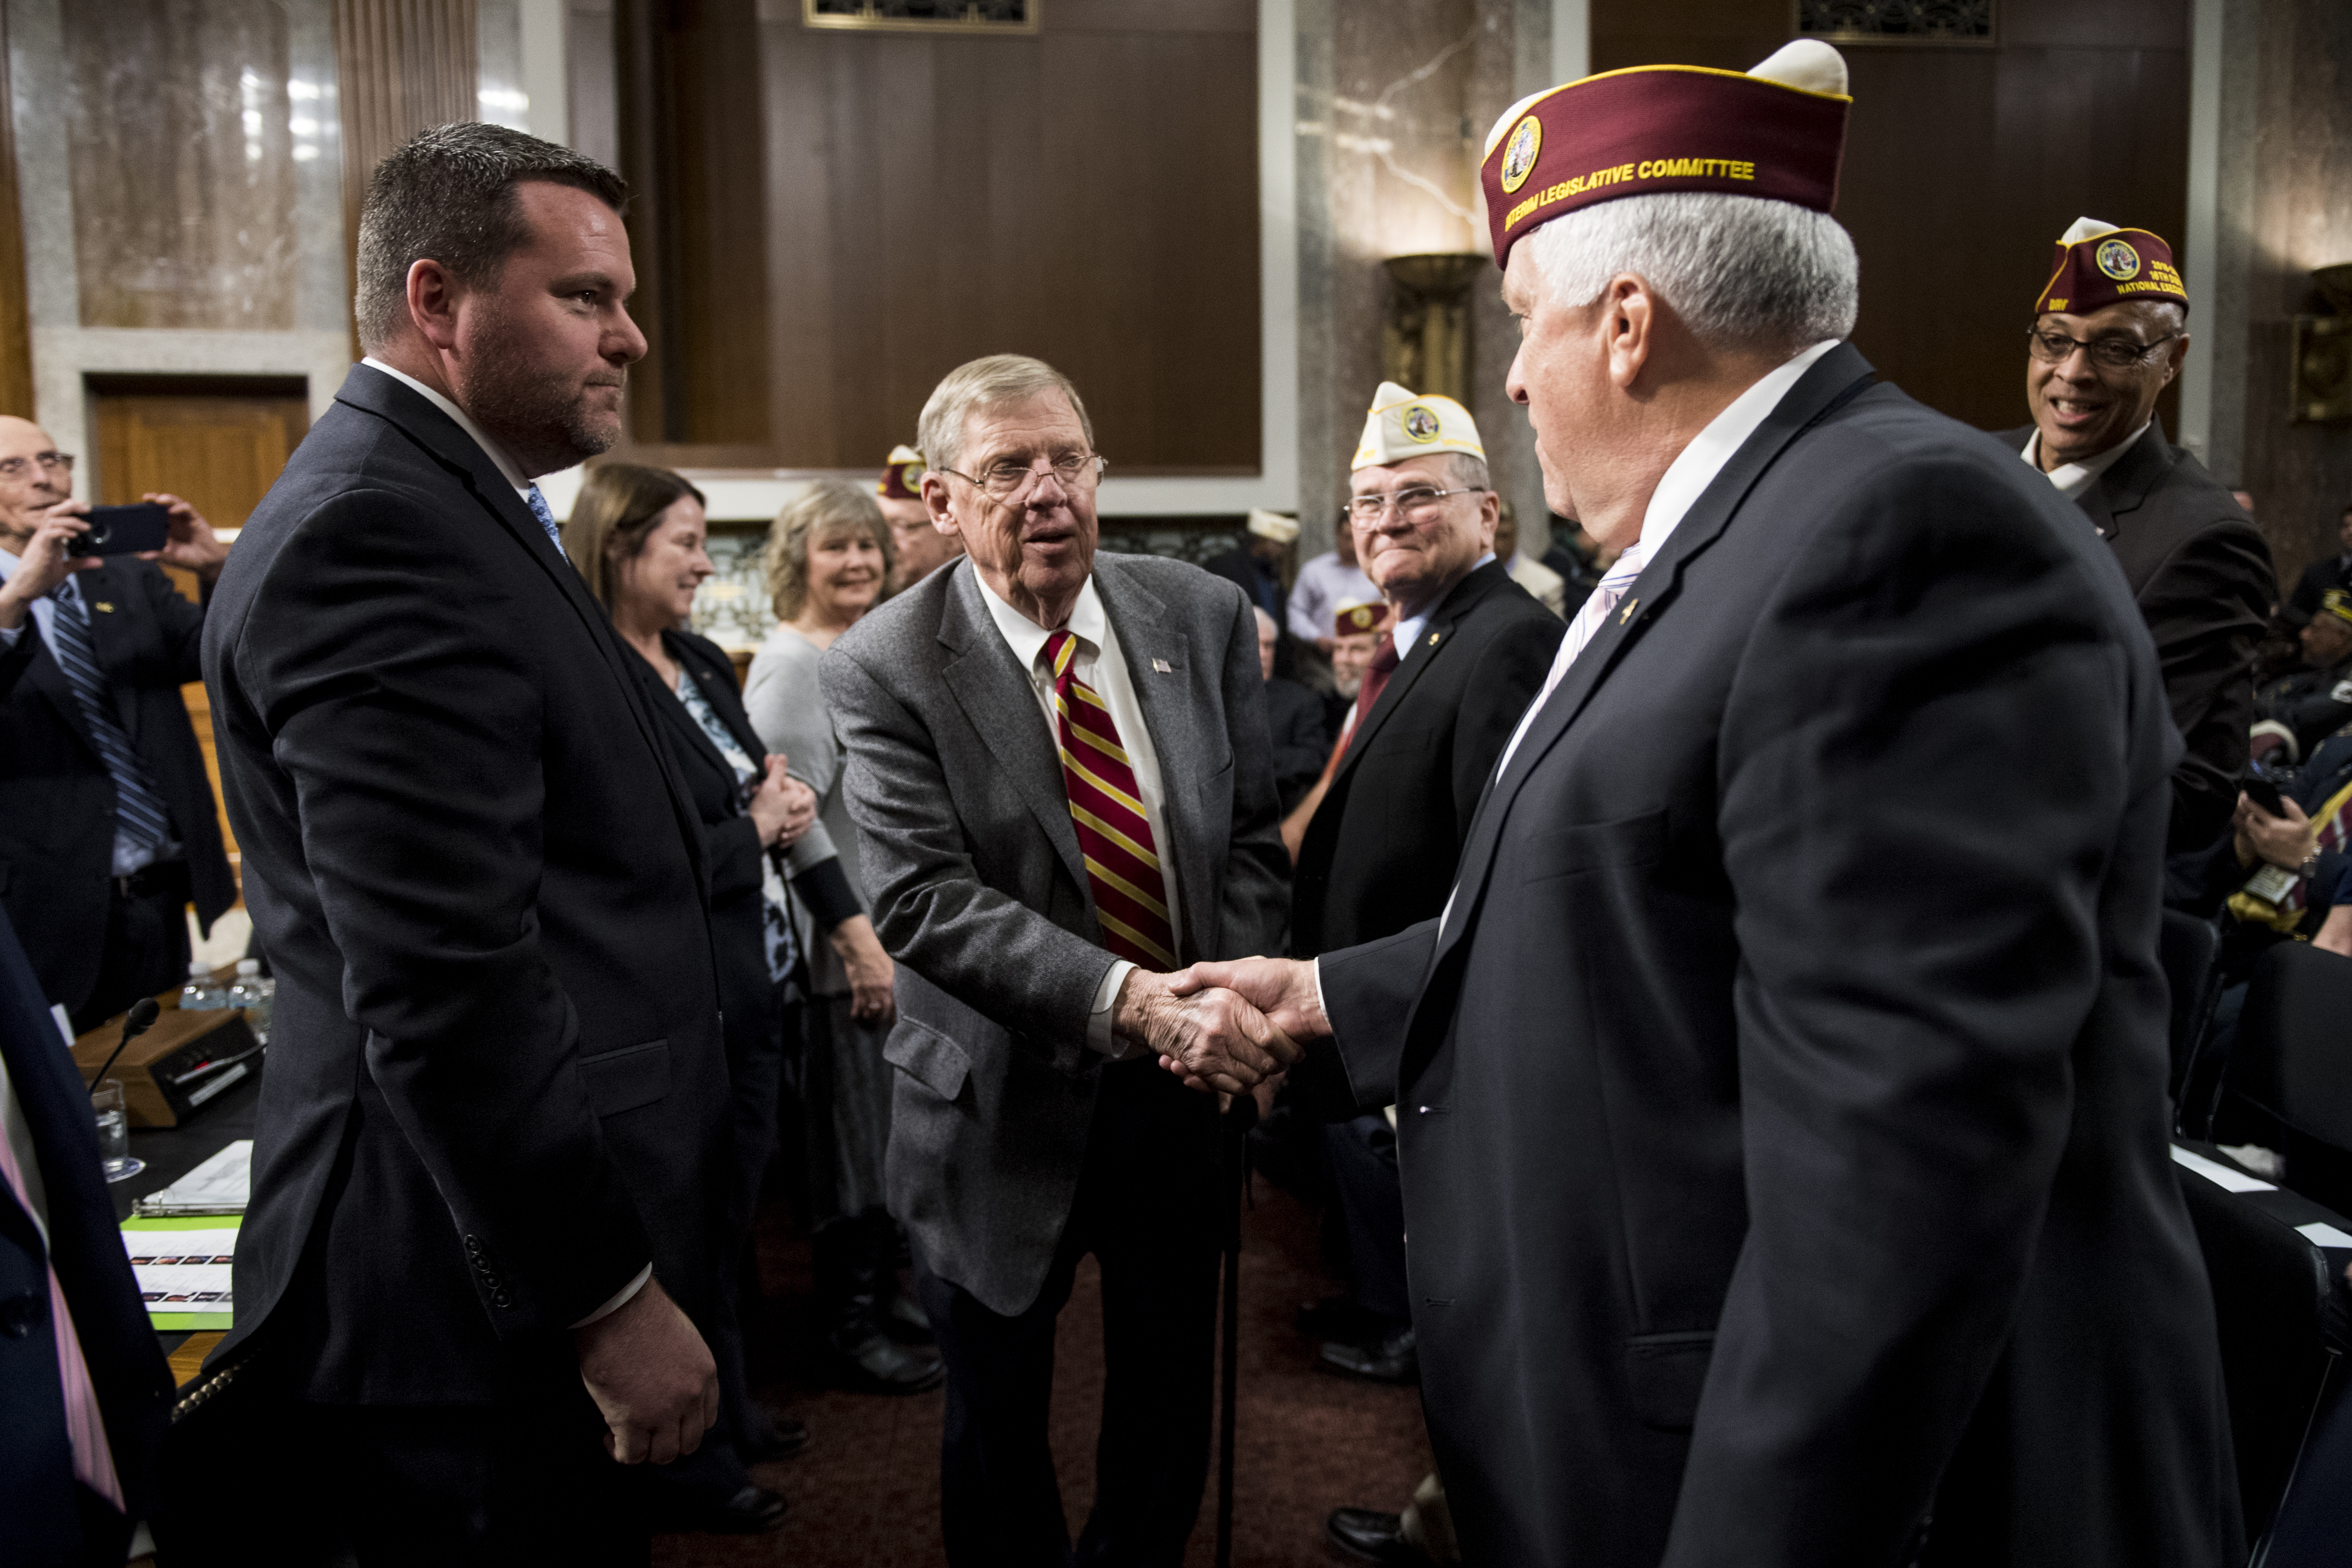 UNITED STATES - FEBRUARY 26: Chairman Johnny Isakson, R-Ga., shakes hands with members of the Disabled American Veterans as he arrives for the Joint Hearing of the House and Senate Veterans' Affairs Committees to receive the legislative presentation of the Disabled American Veterans on Tuesday, Feb. 26, 2019. (Photo By Bill Clark/CQ Roll Call)